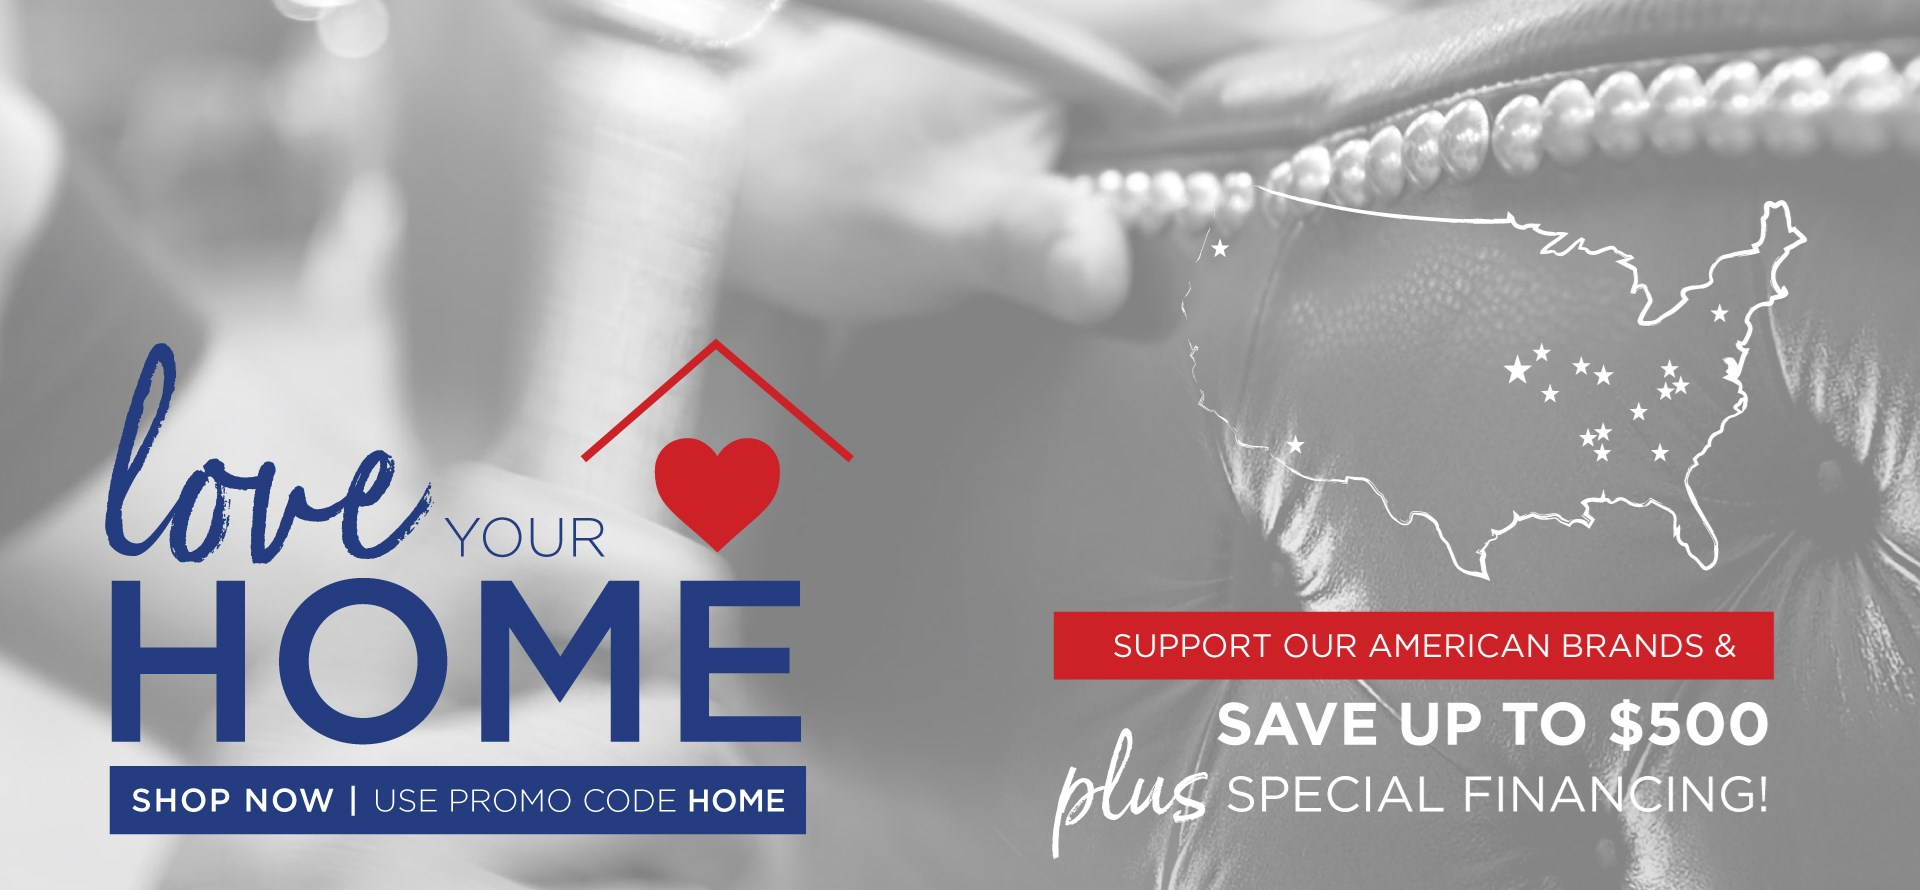 Love Your Home | Support our American Brands & Save up to $500 Plus Special Financing! | Shop Now and use promo code HOME